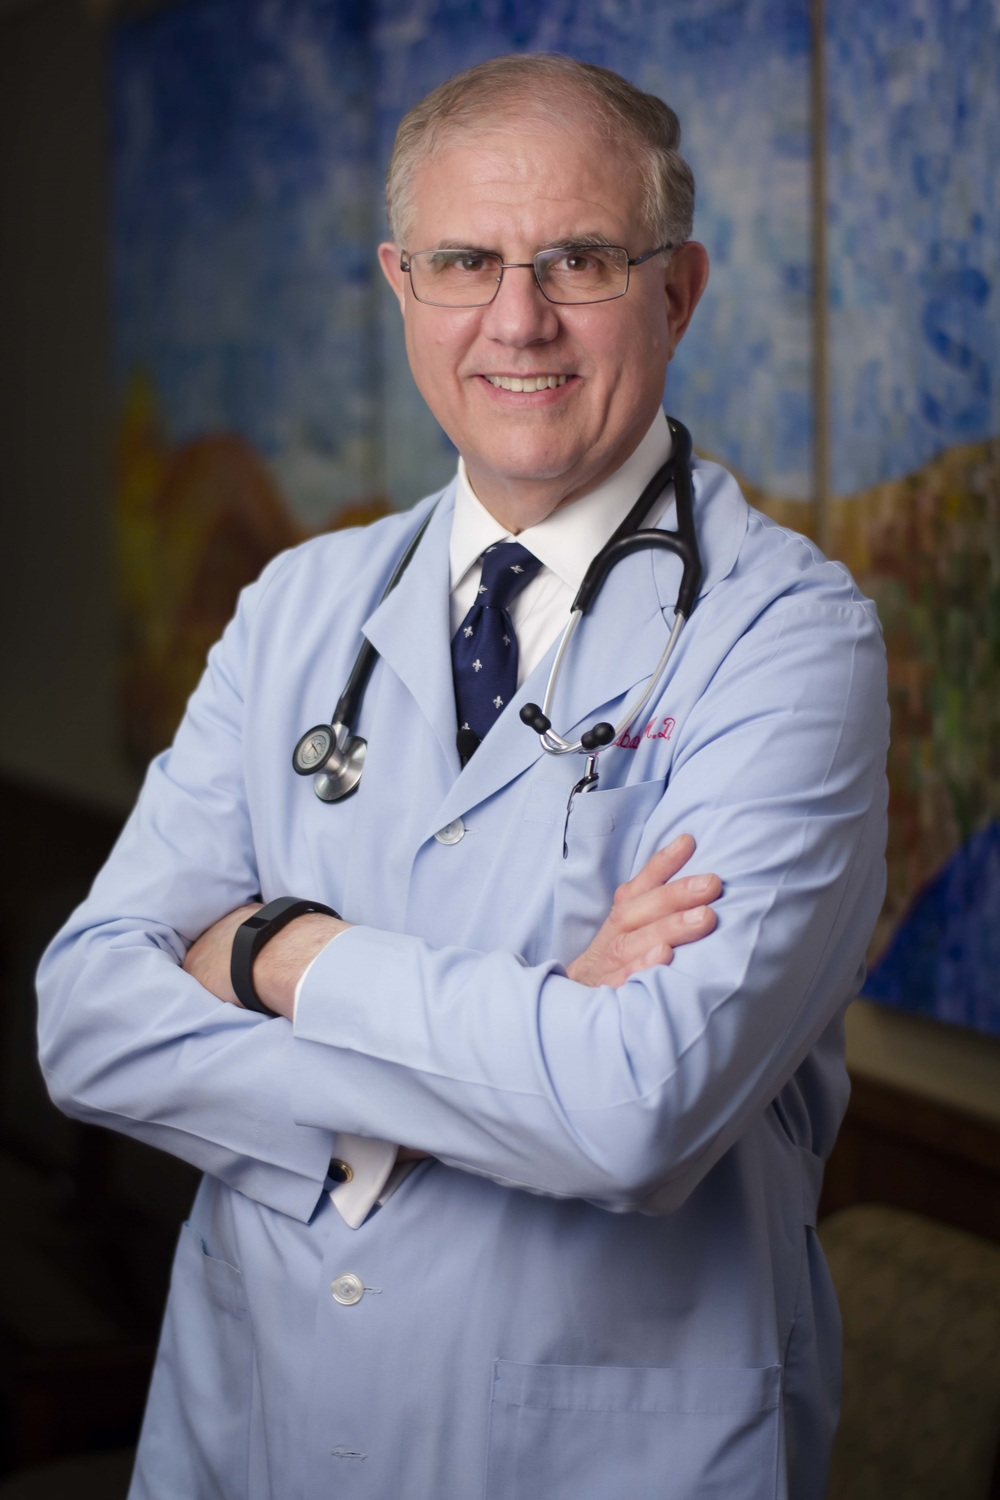 Dr. Scott J. Kolbaba Author Biography